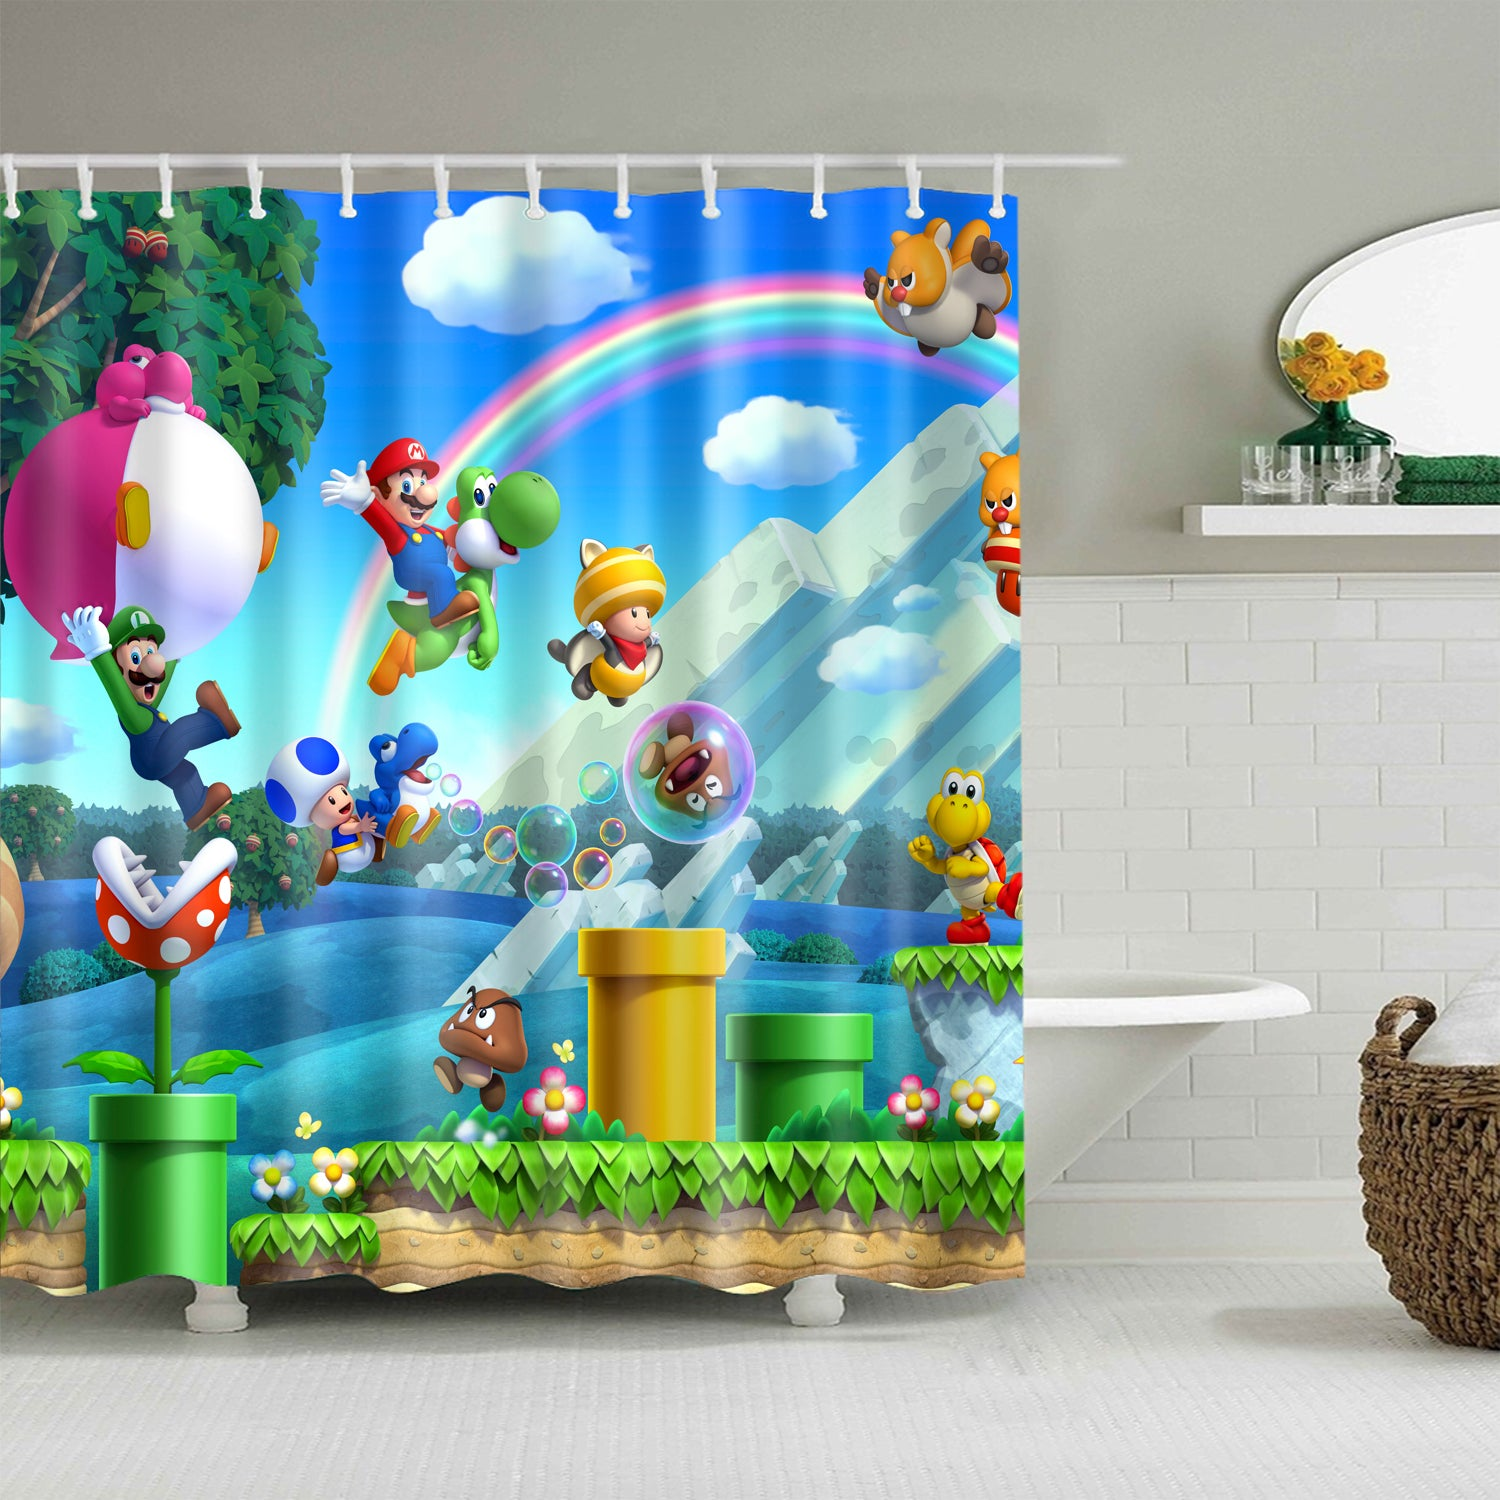 Colorful Design Super Mario Shower Curtain